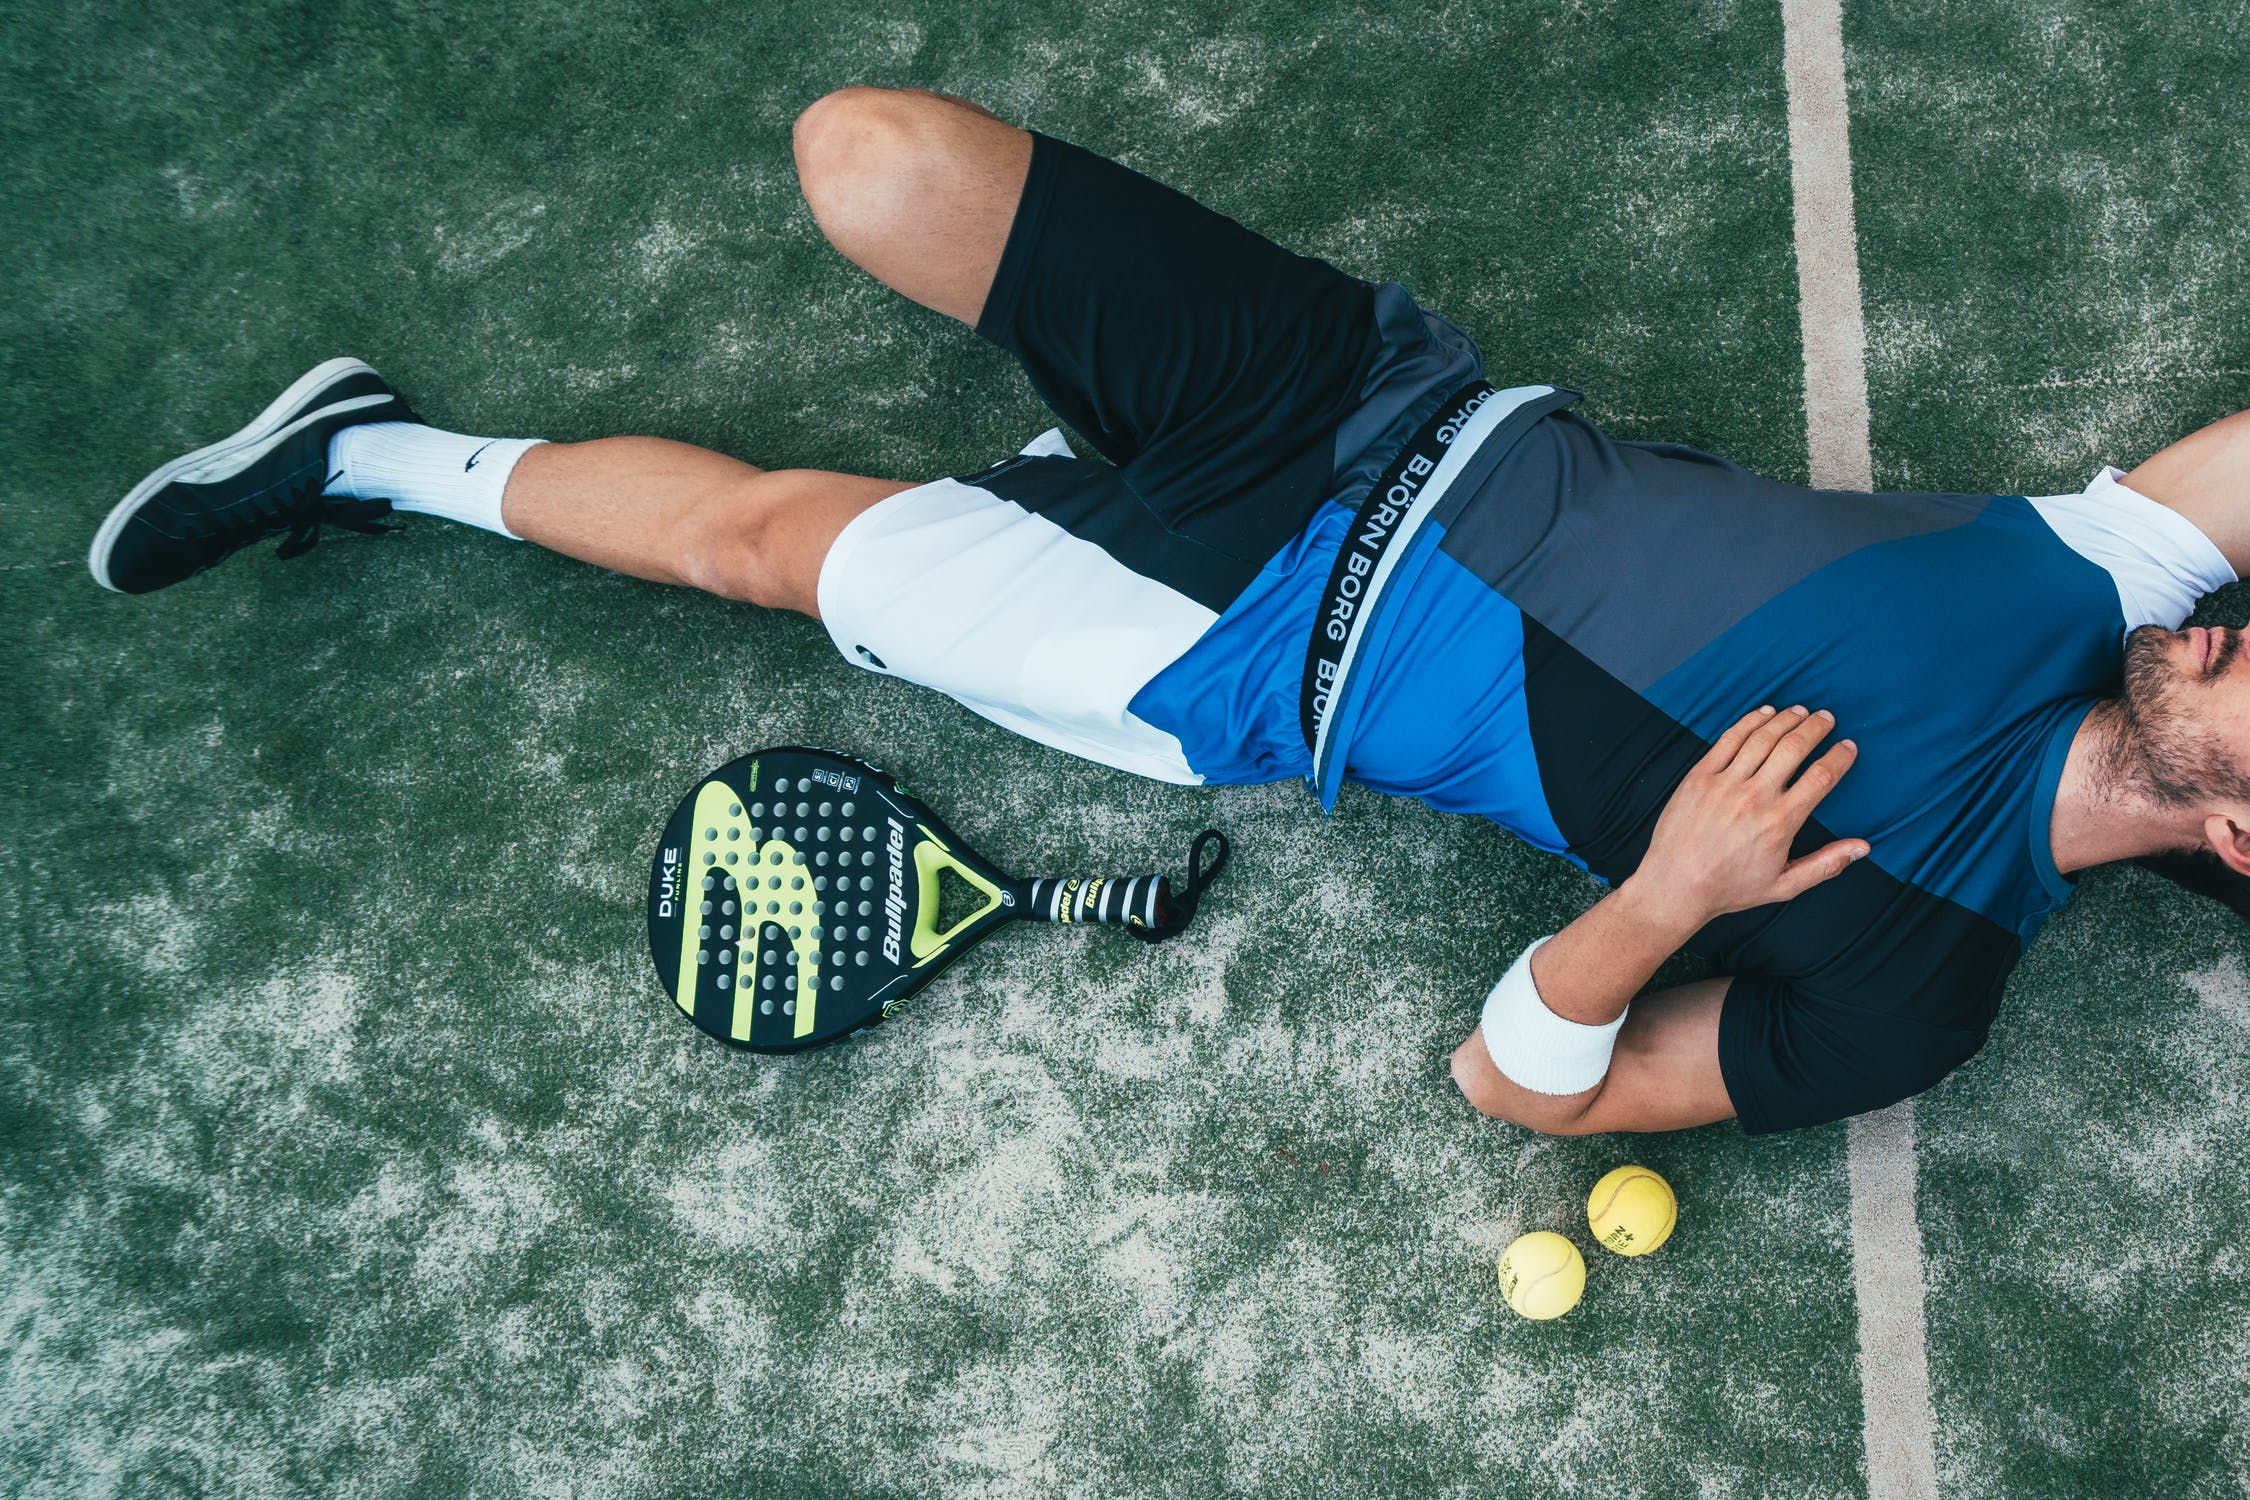 A tennis player suffers the consequences of jet lag following long distance air travel